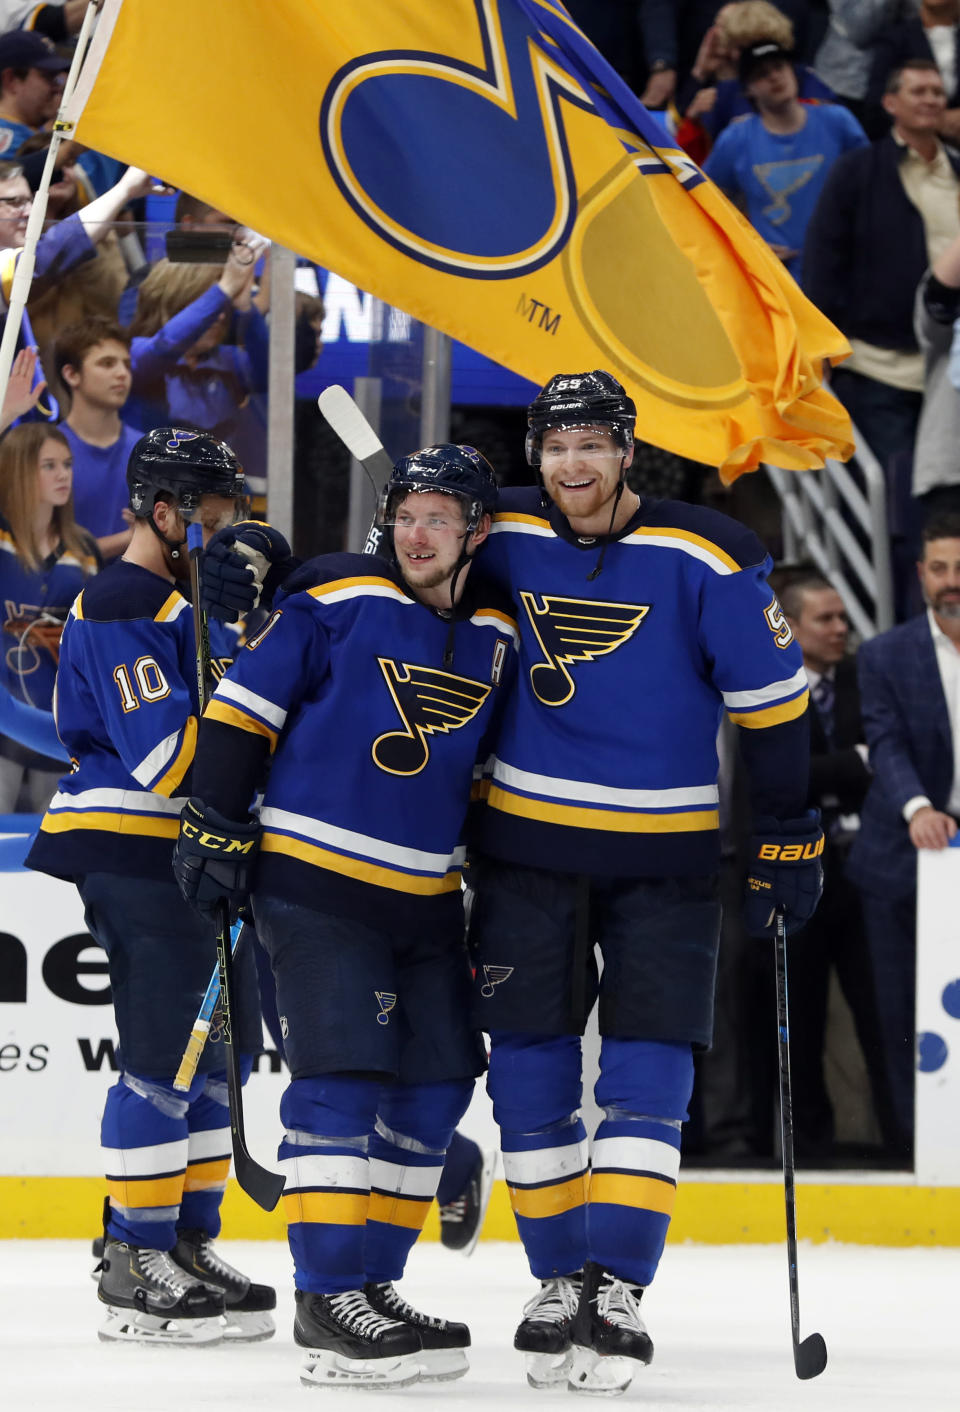 St. Louis Blues' Colton Parayko, right, and Vladimir Tarasenko celebrate following Game 7 of the team's NHL second-round hockey playoff series against the Dallas Stars on Tuesday, May 7, 2019, in St. Louis. The Blues won 2-1 in double overtime to take the series. (AP Photo/Jeff Roberson)